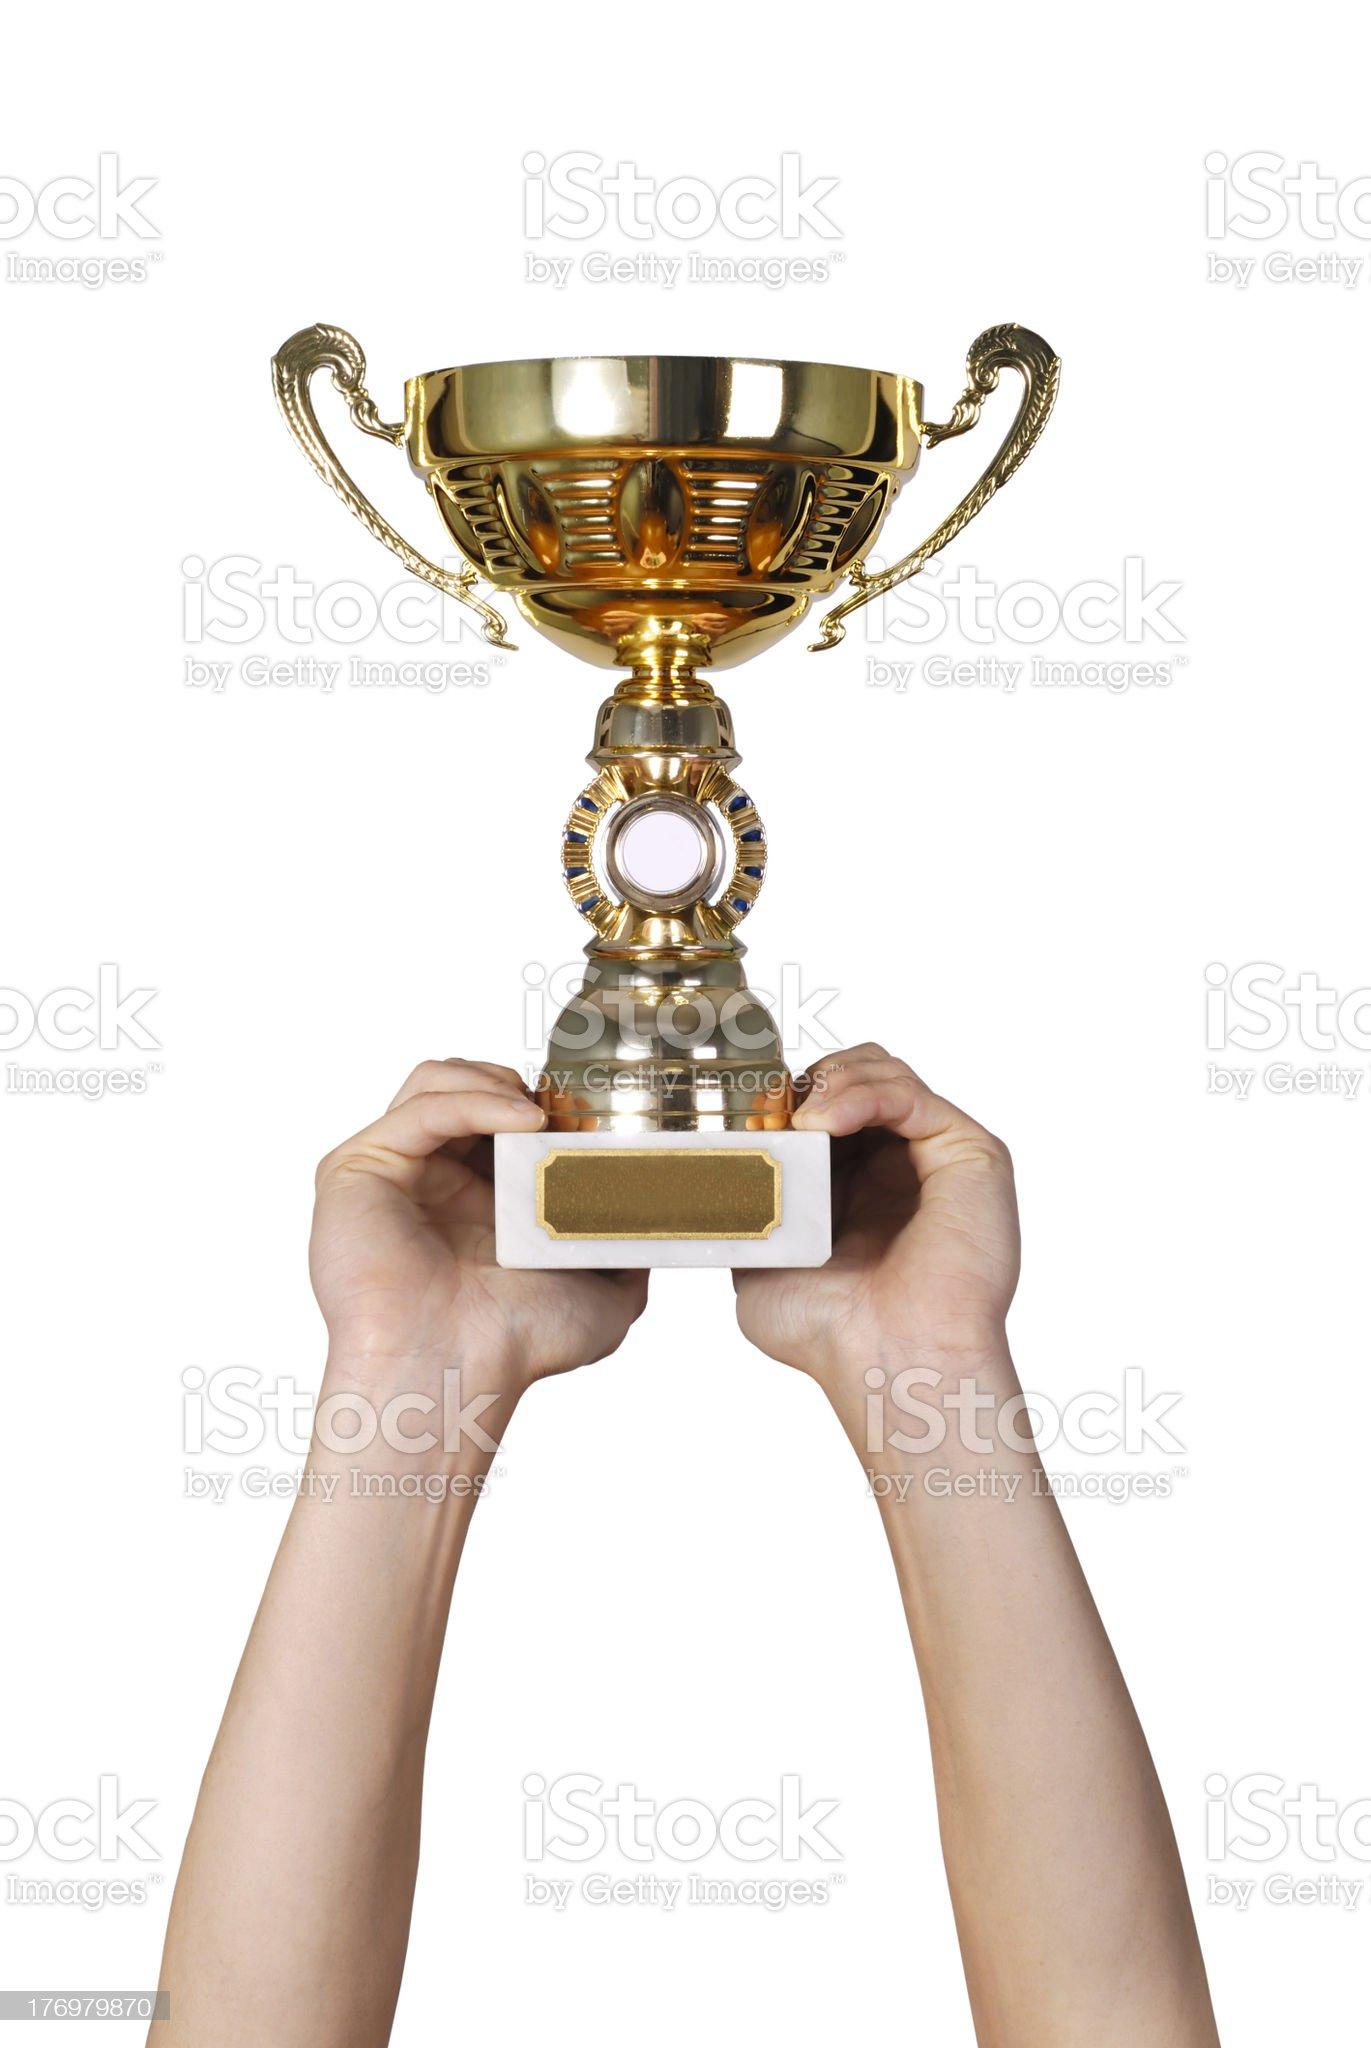 Golden trophy royalty-free stock photo